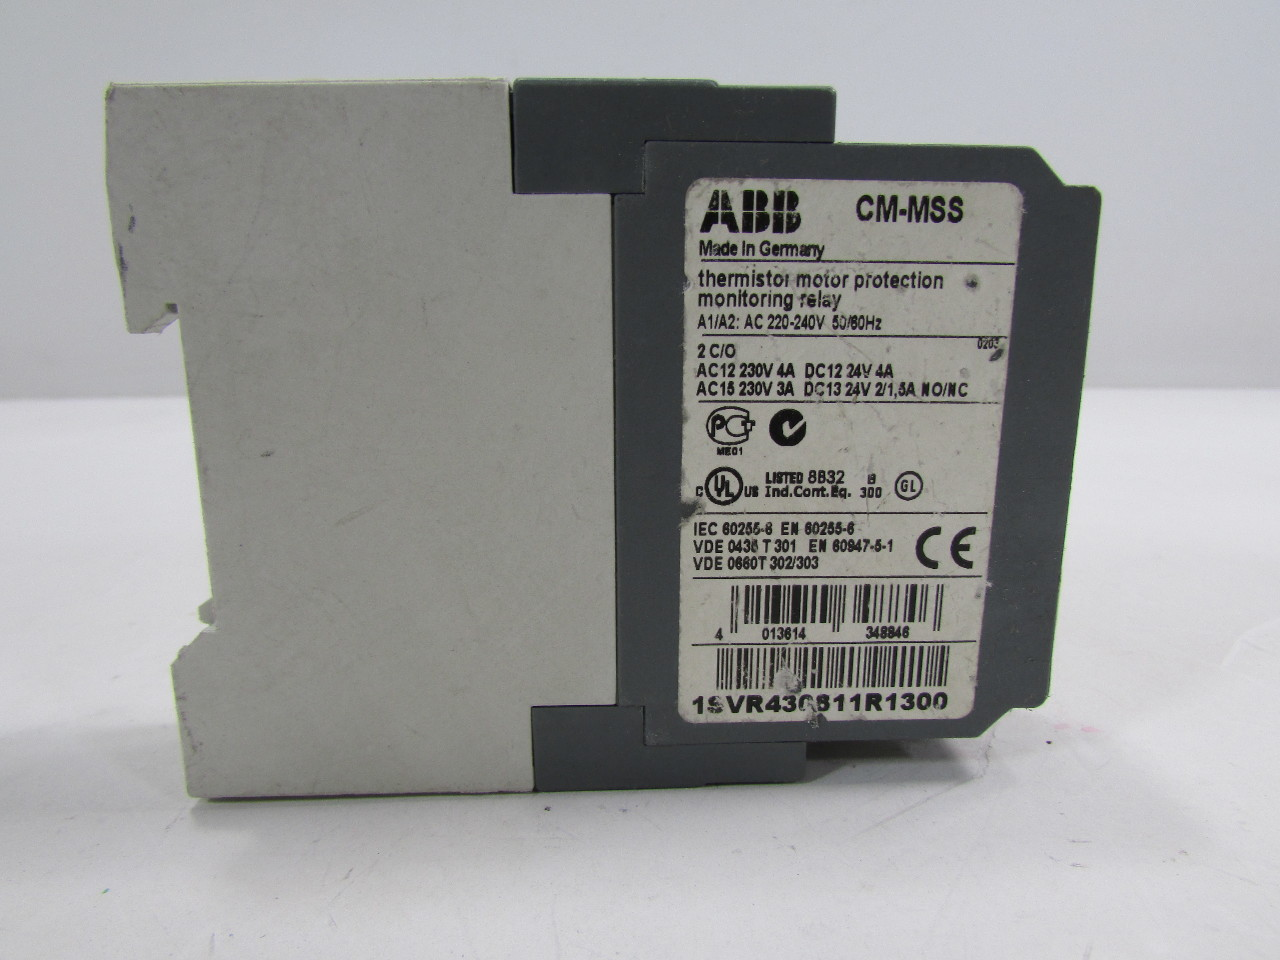 Abb cm mss 1svr430720r0300 motor protection monitoring for Abb motor protection relay catalogue